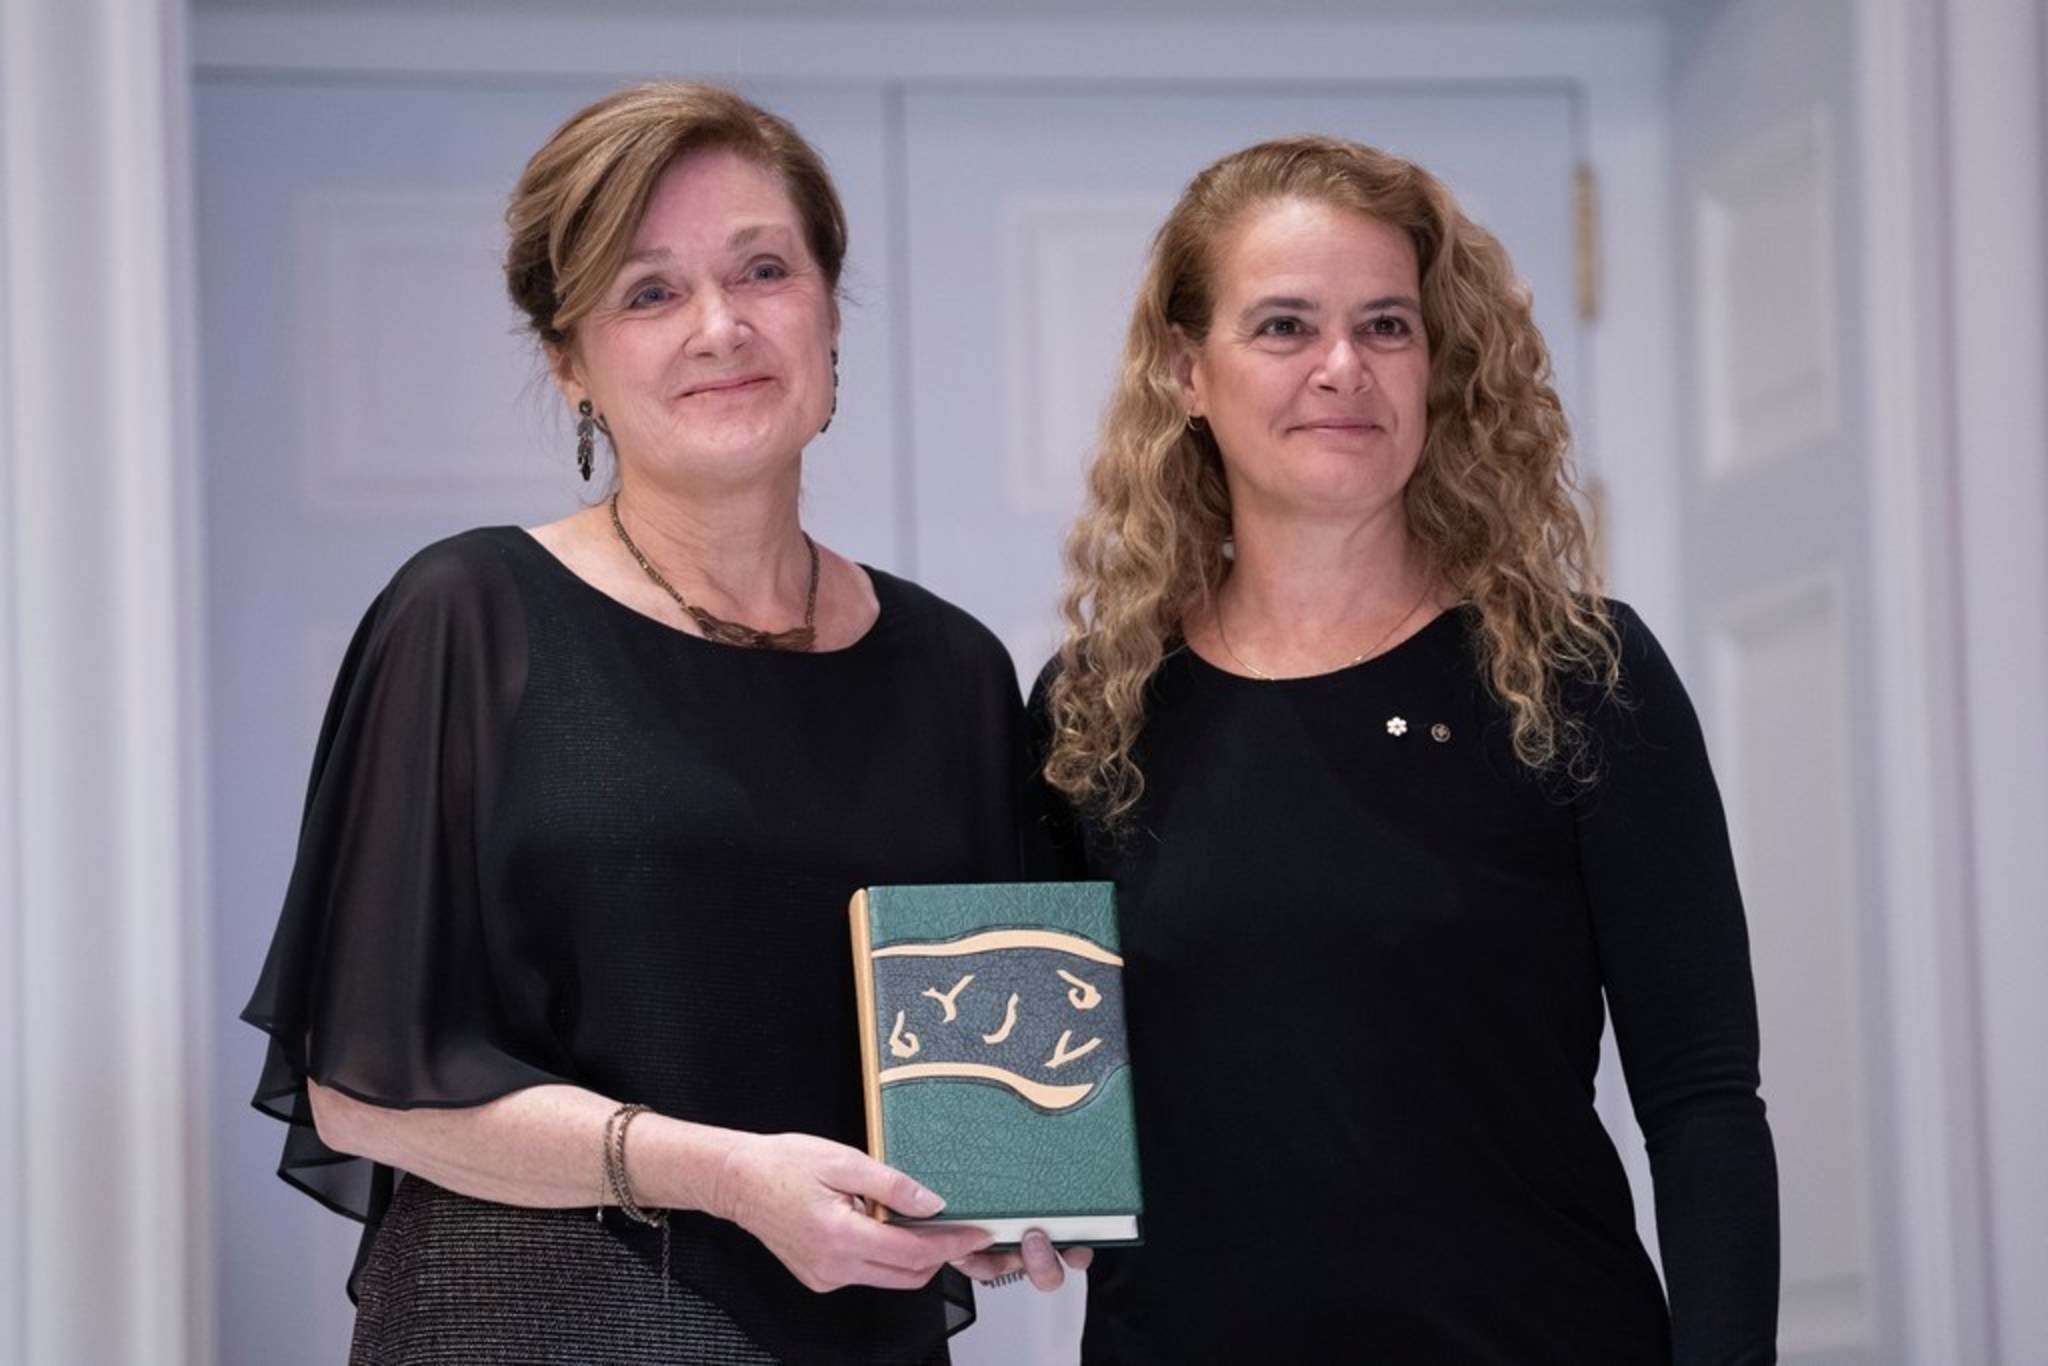 CHRIS WATTIE / THE CANADIAN PRESS FILES</p><p>Joan Thomas, with Governor General Julie Payette, was awarded the 2019 Governor General's English-language award for fiction for her fourth novel, Five Wives, in October. The award included a $25,000 cash prize.</p>